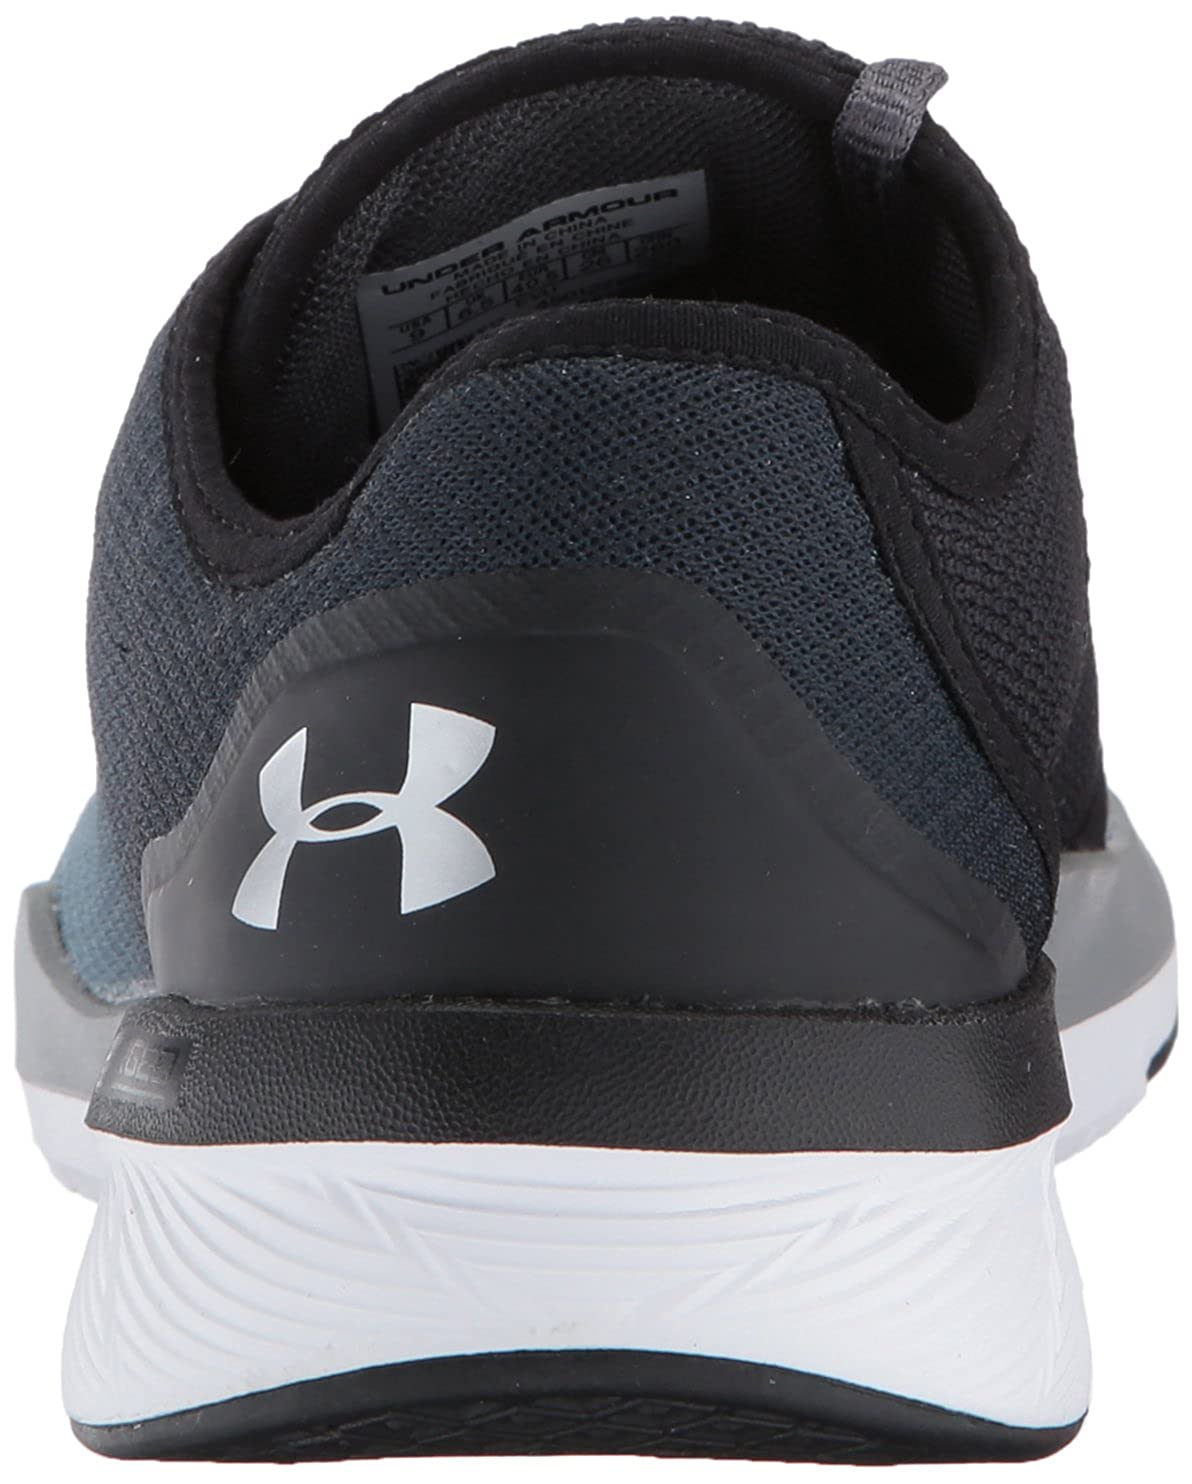 big sale 5c021 a0163 Amazon.com   Under Armour Women s Charged Push Cross-Trainer Shoe   Fashion  Sneakers